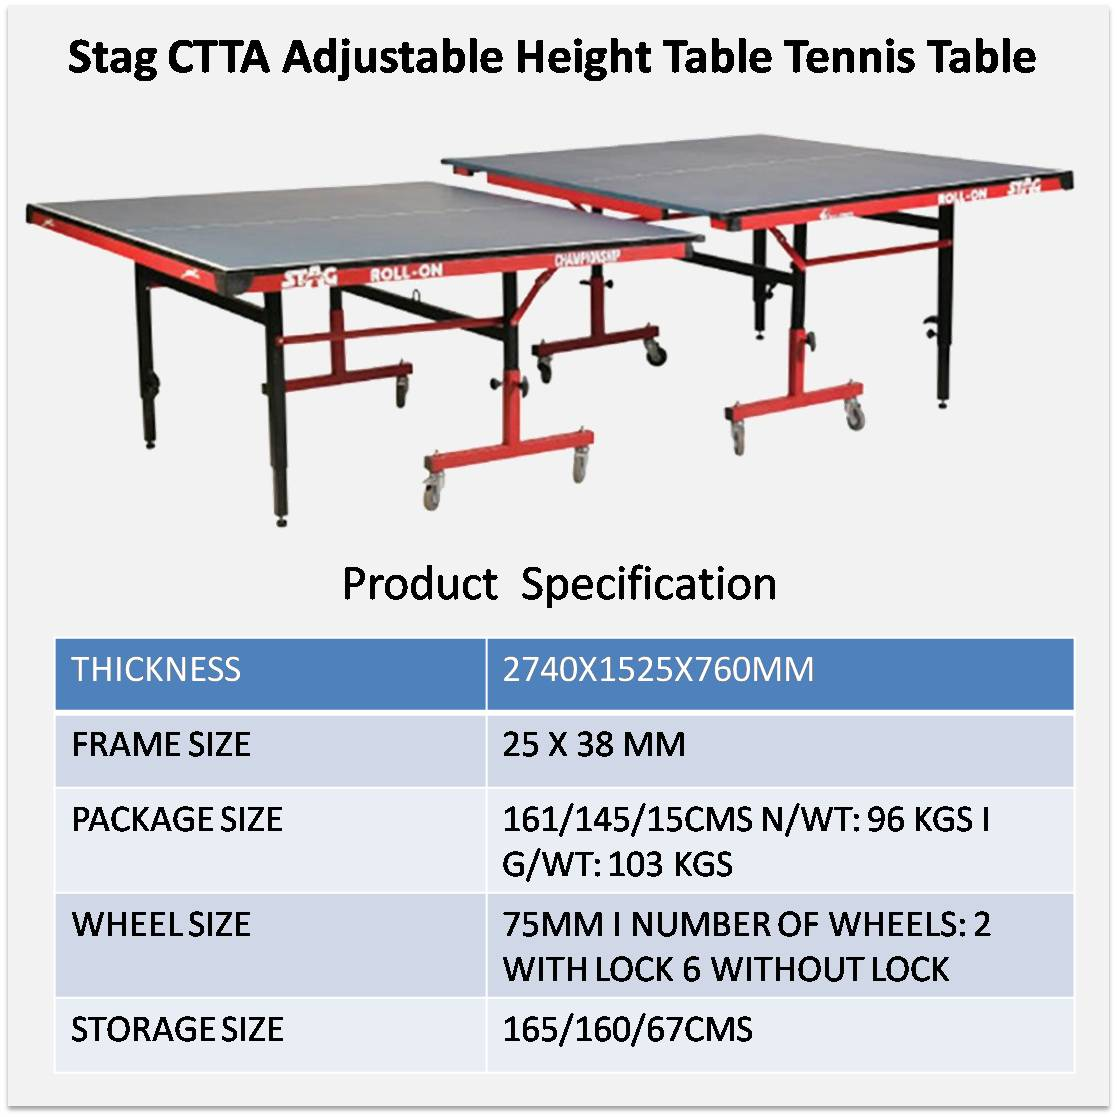 Standard ping pong table height - Measurements of table tennis table ...